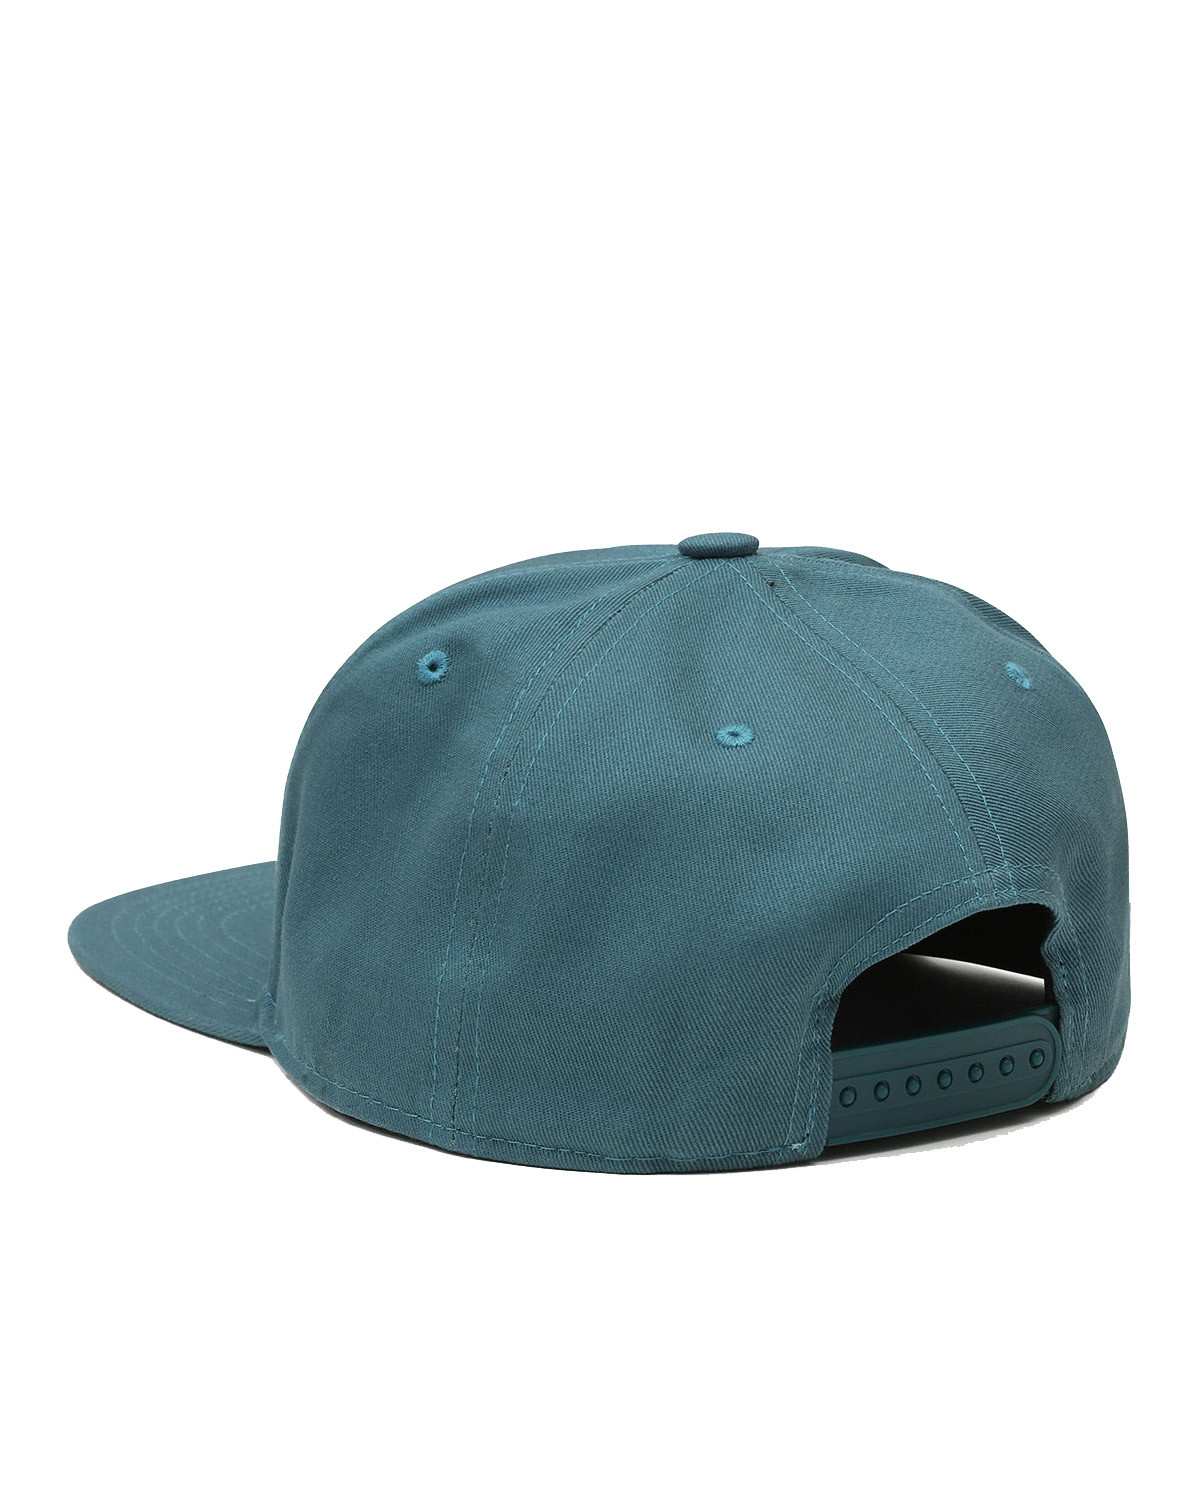 Image of   Dickies Muldoon 5 Panel Kasket (Lincoln Green, One Size)